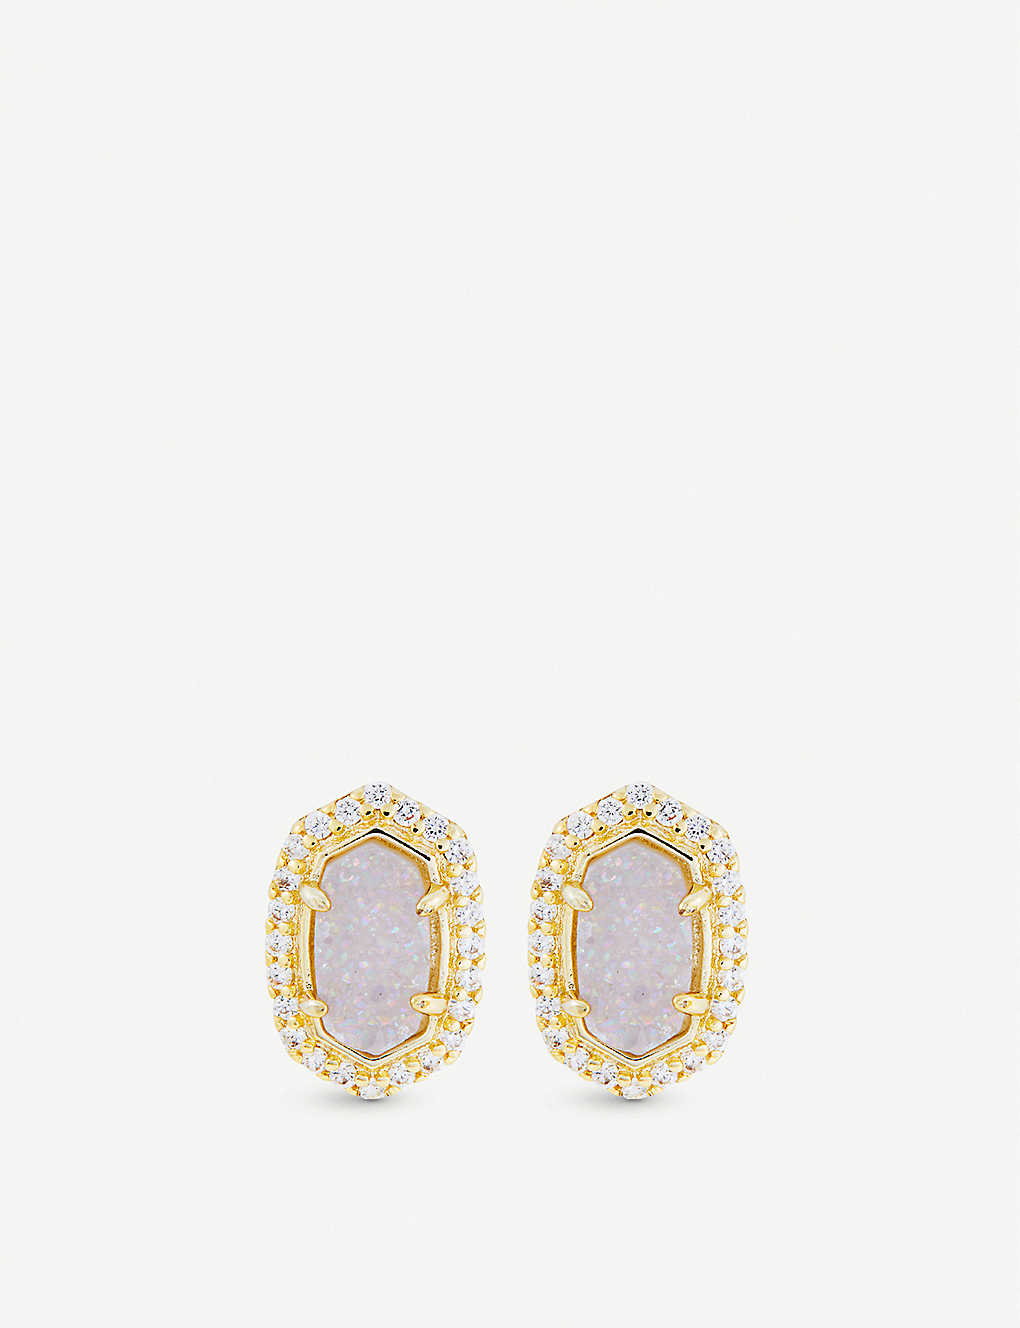 b5e9449ad KENDRA SCOTT Cade 14ct yellow gold-plated, iridescent drusy and cubic  zirconia earrings